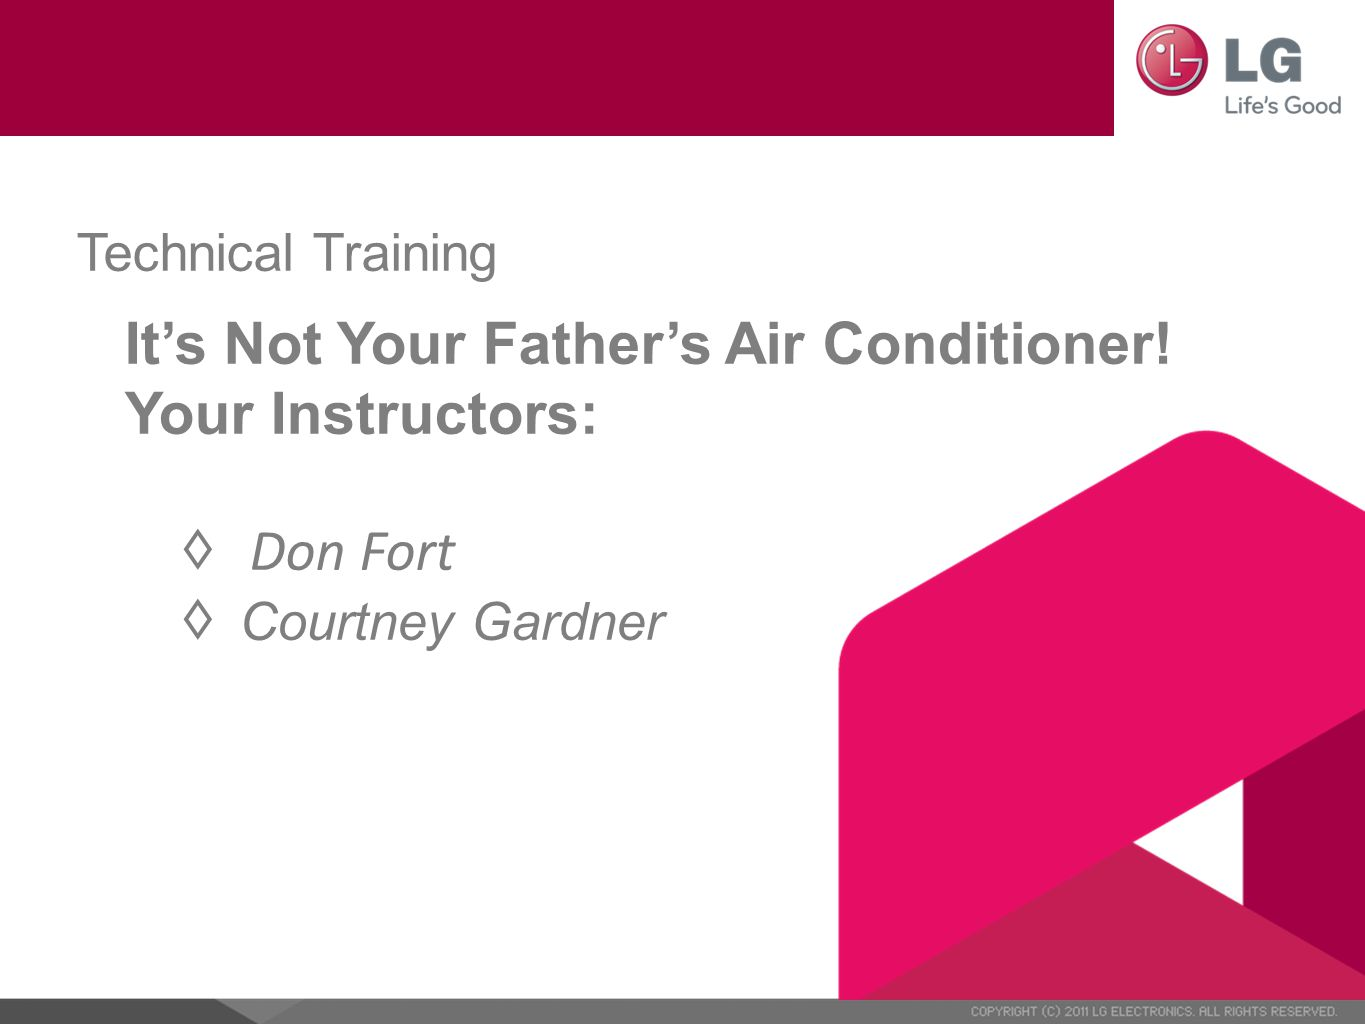 Technical Training It's Not Your Father's Air Conditioner.